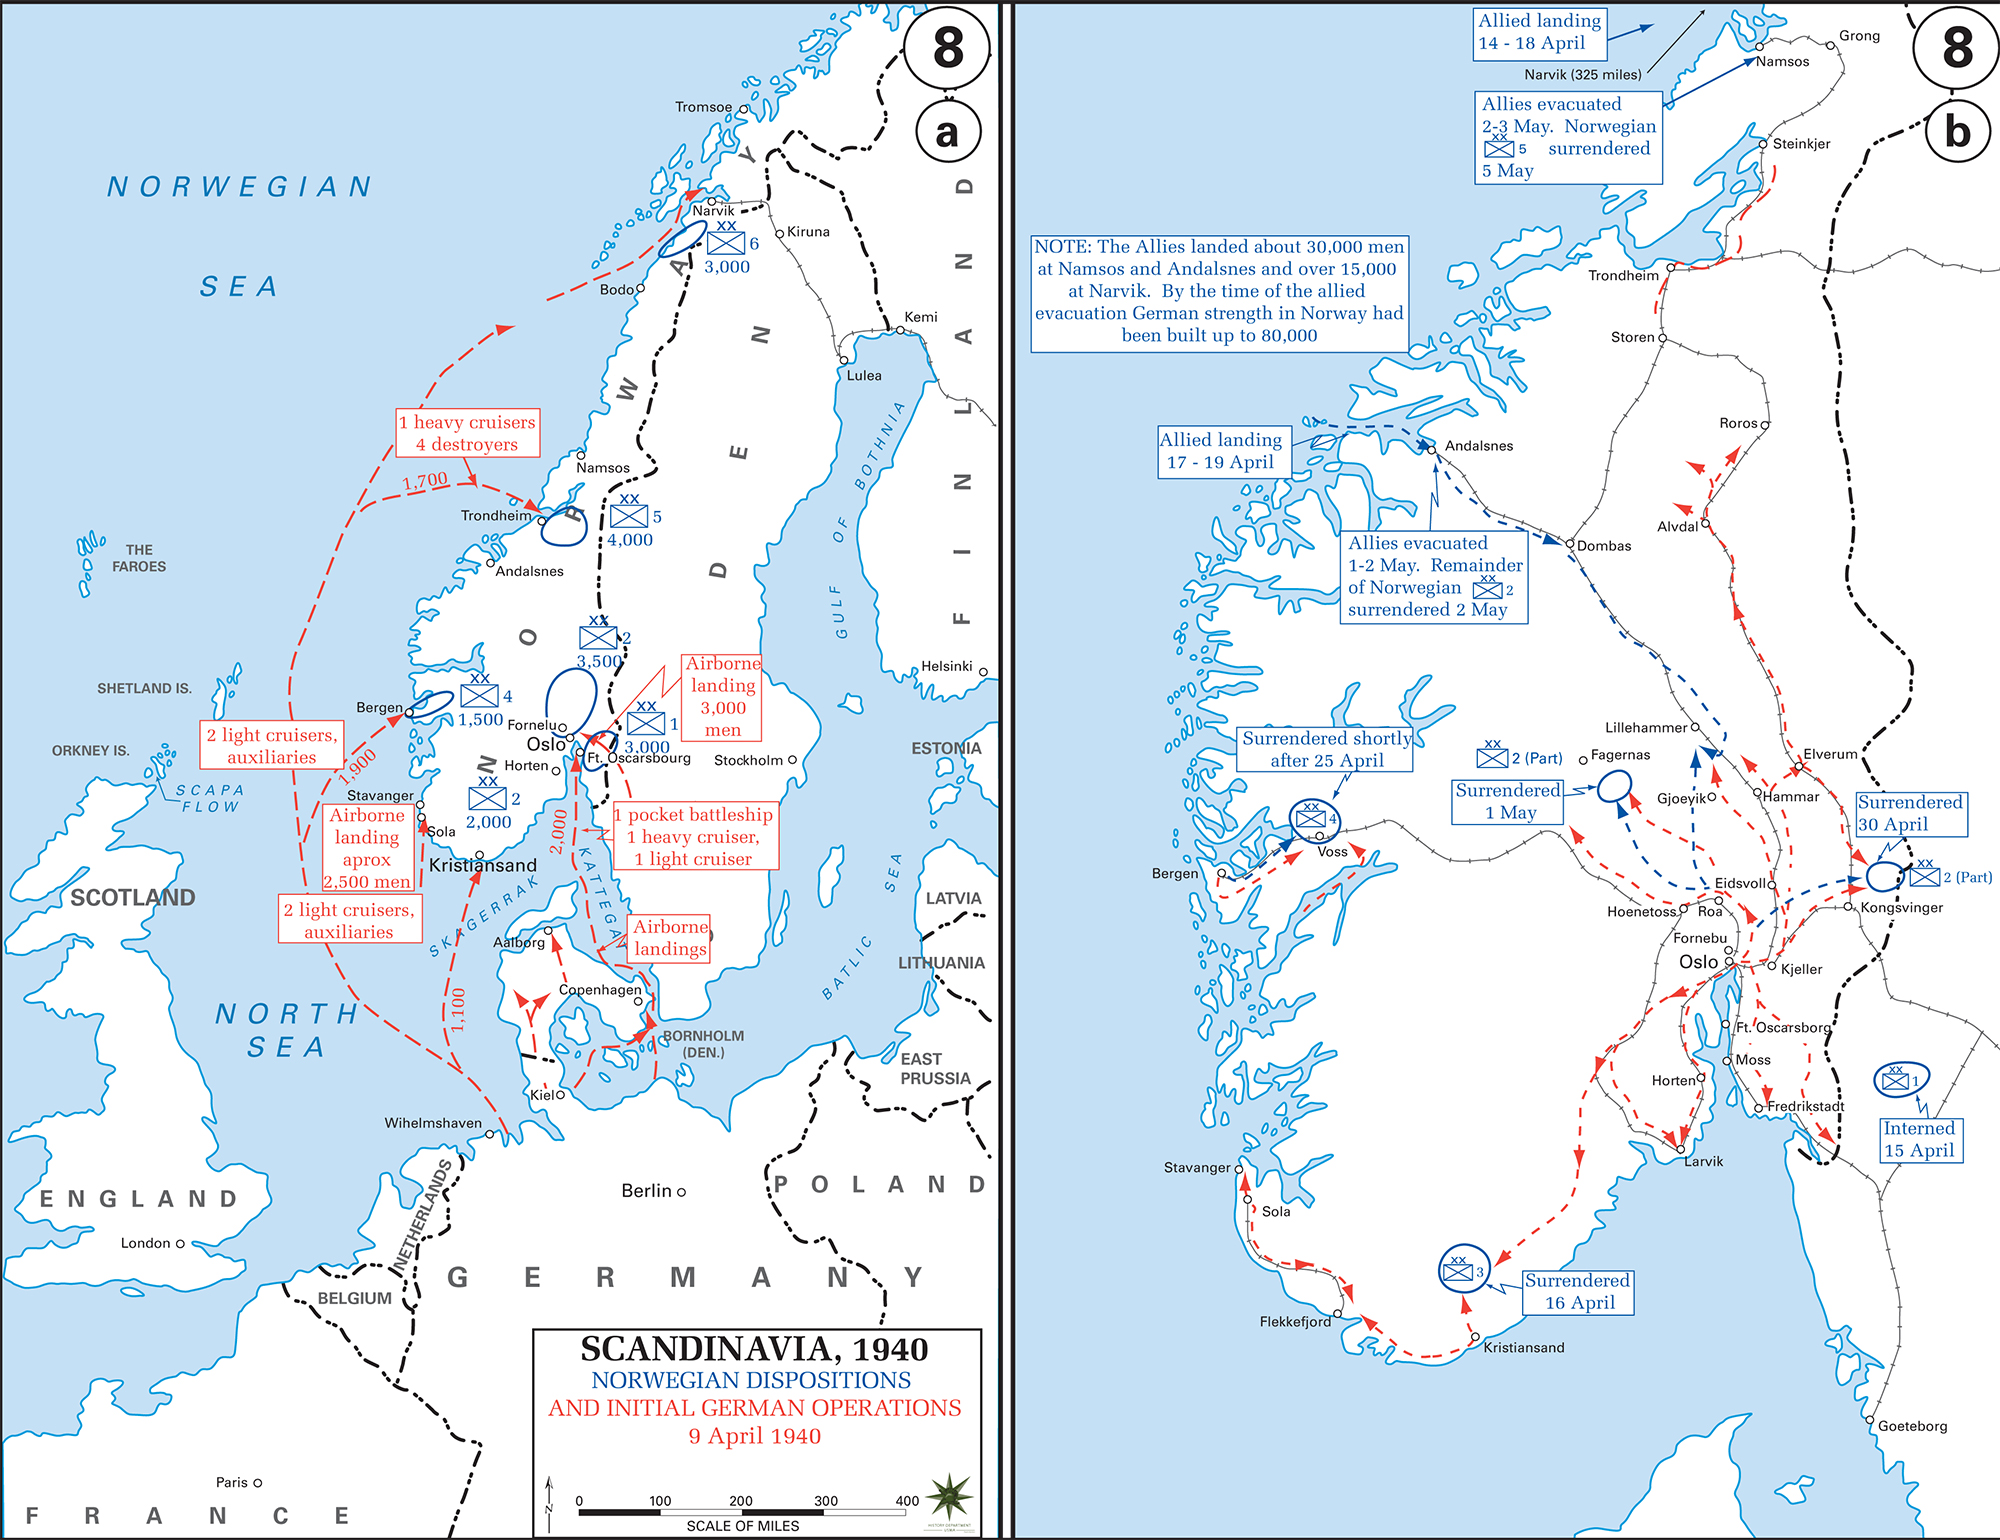 Map of WWII - Scandinavia 1940